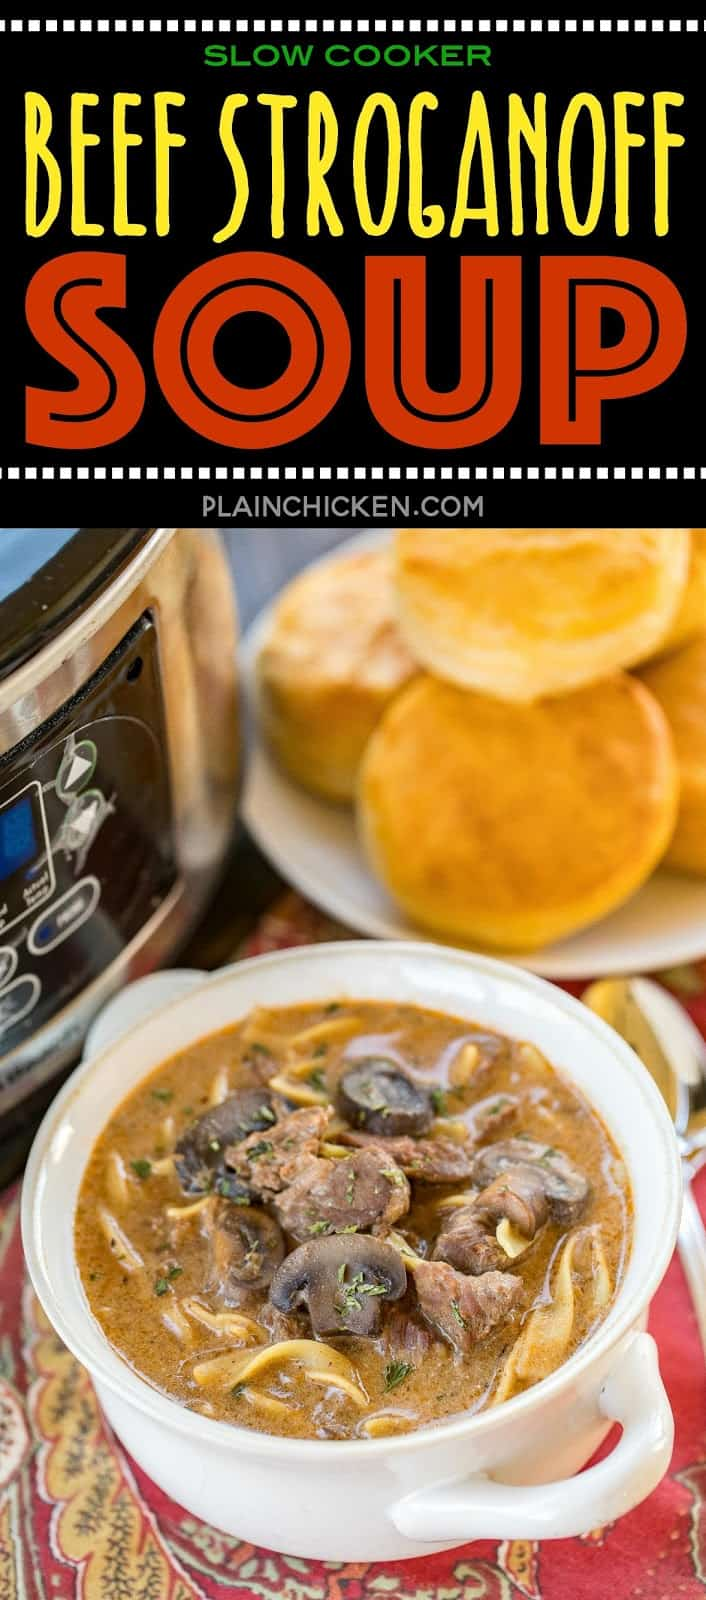 Slow Cooker Beef Stroganoff Soup - sirloin roast, beef broth, onion soup mix, tomato paste, Worcestershire sauce, mushrooms, sour cream and egg noodles. Cooks all day in the crockpot - even the noodles. Serve with some crusty bread for an easy weeknight meal! #slowcooker #crockpot #soup